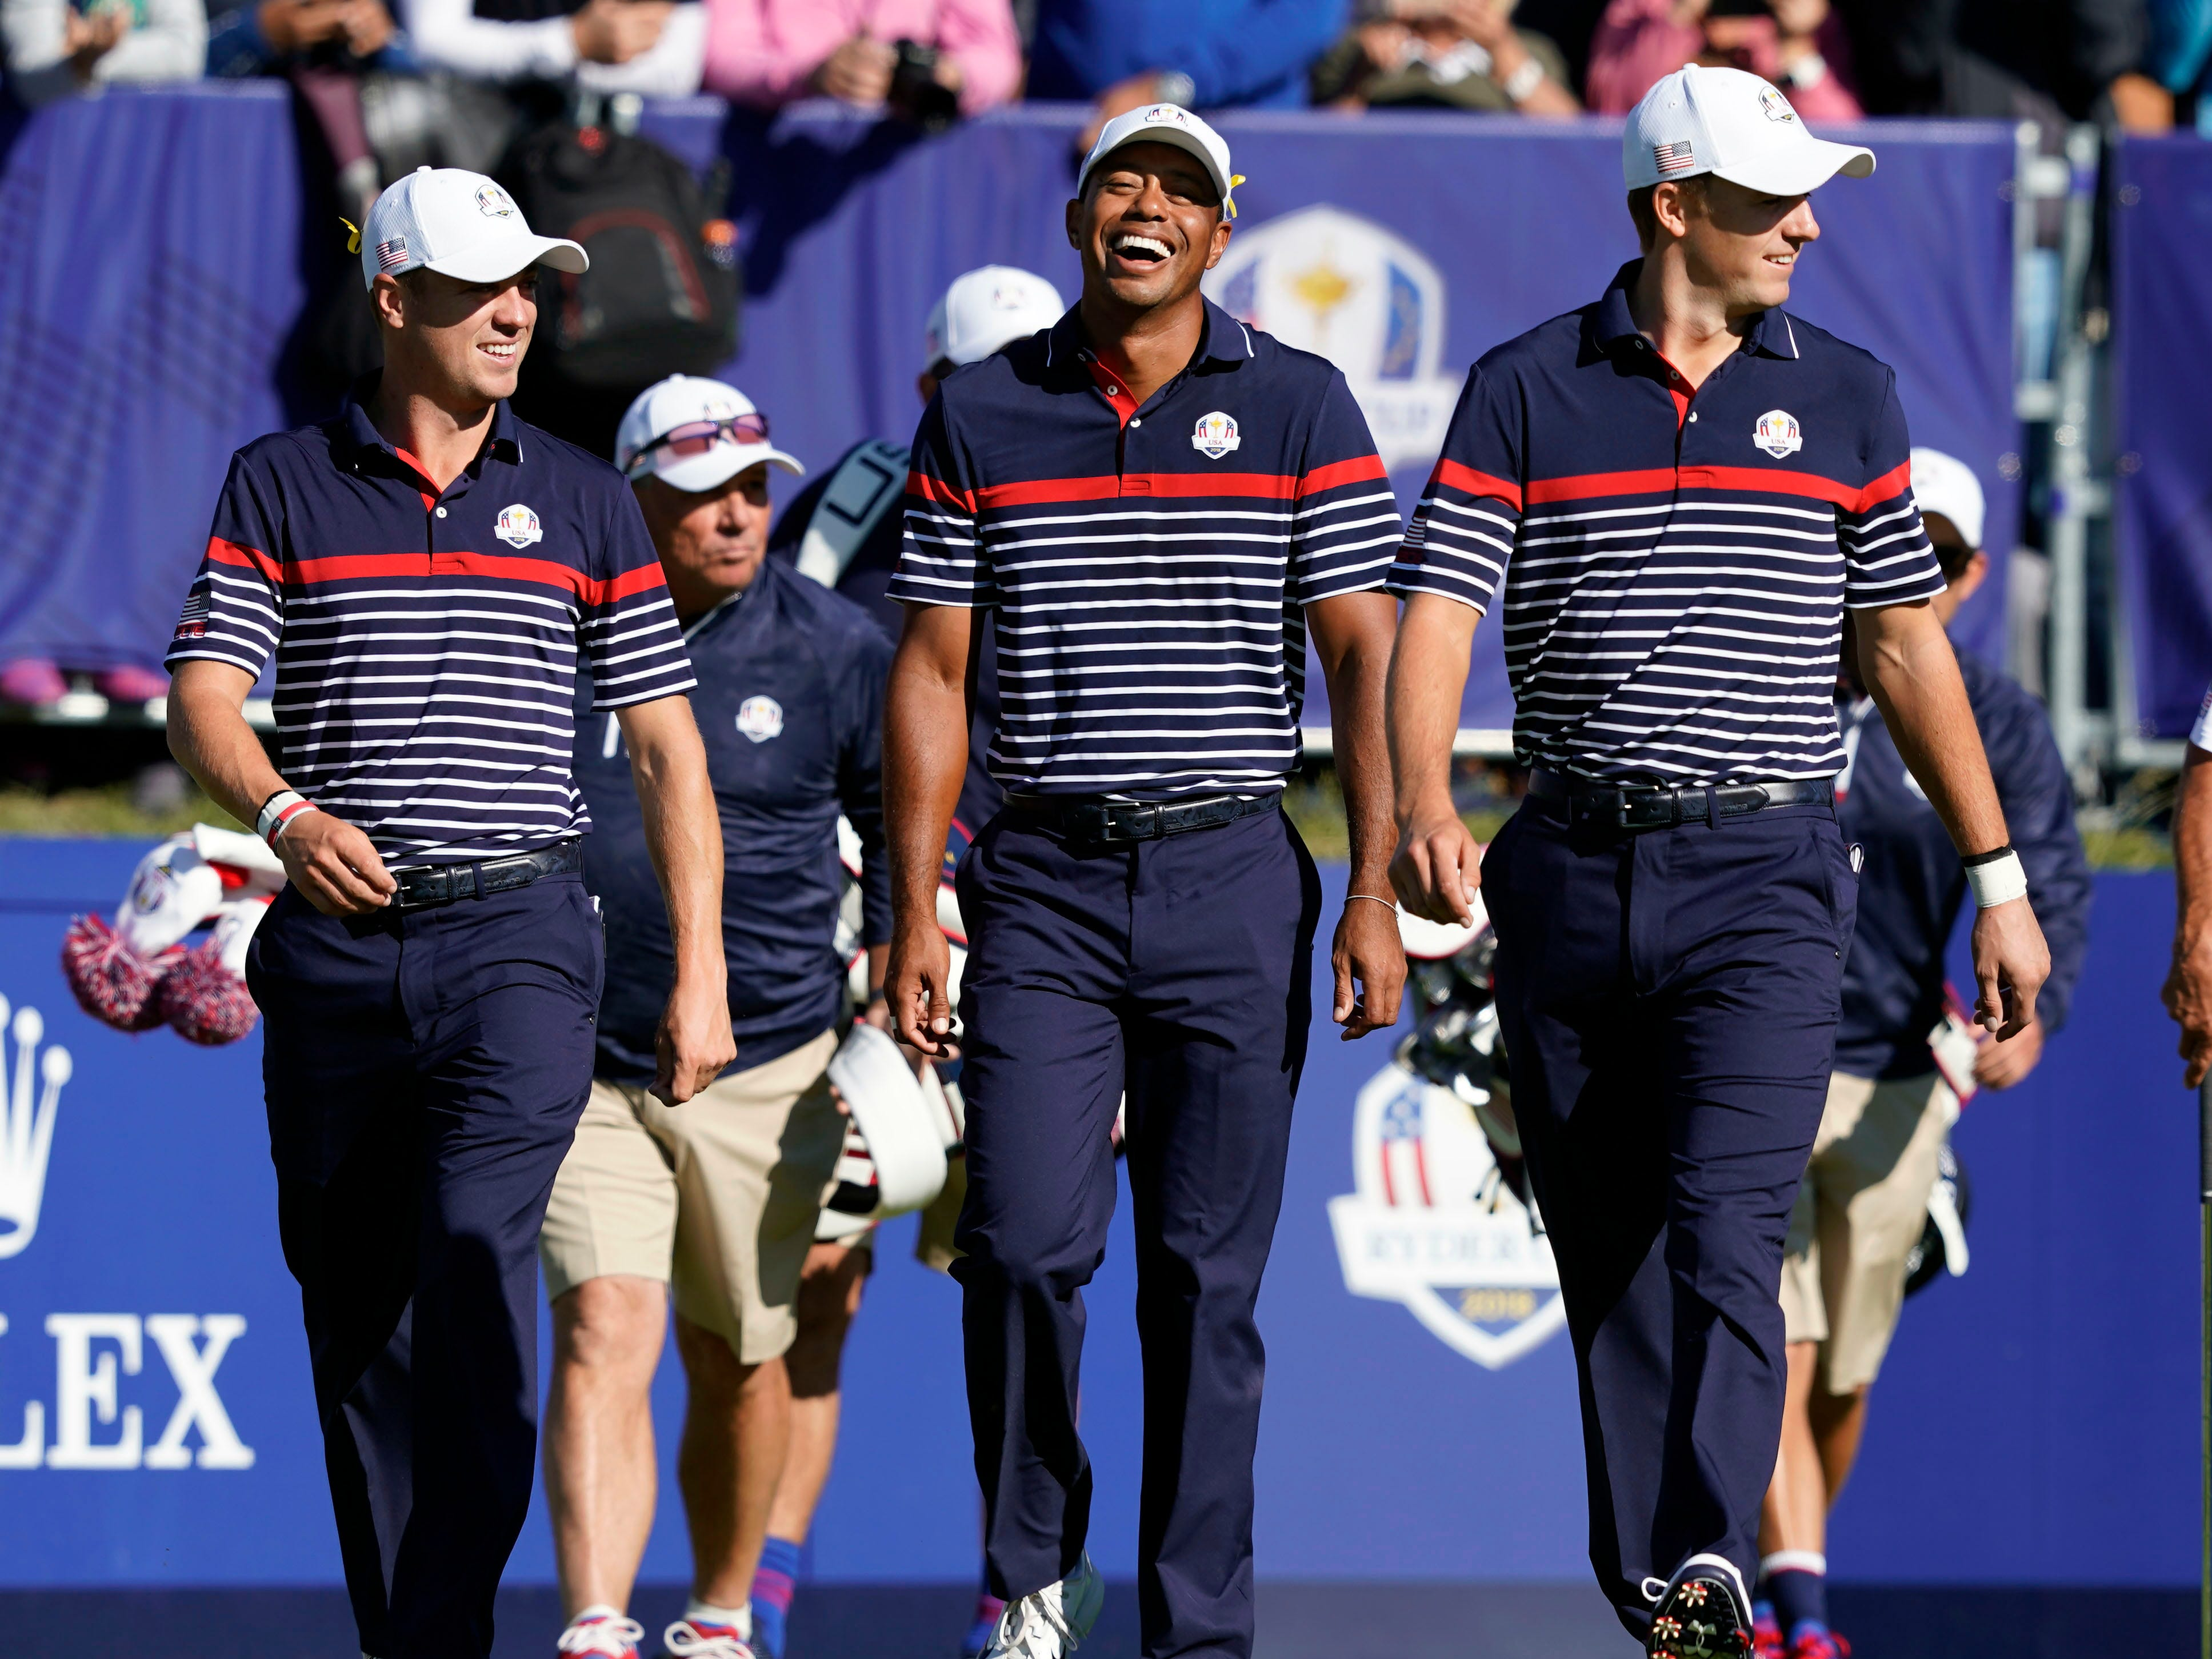 Tiger Woods throws his head back laughing as he walks off the first tee with Justin Thomas and Jordan Spieth during a practice round.